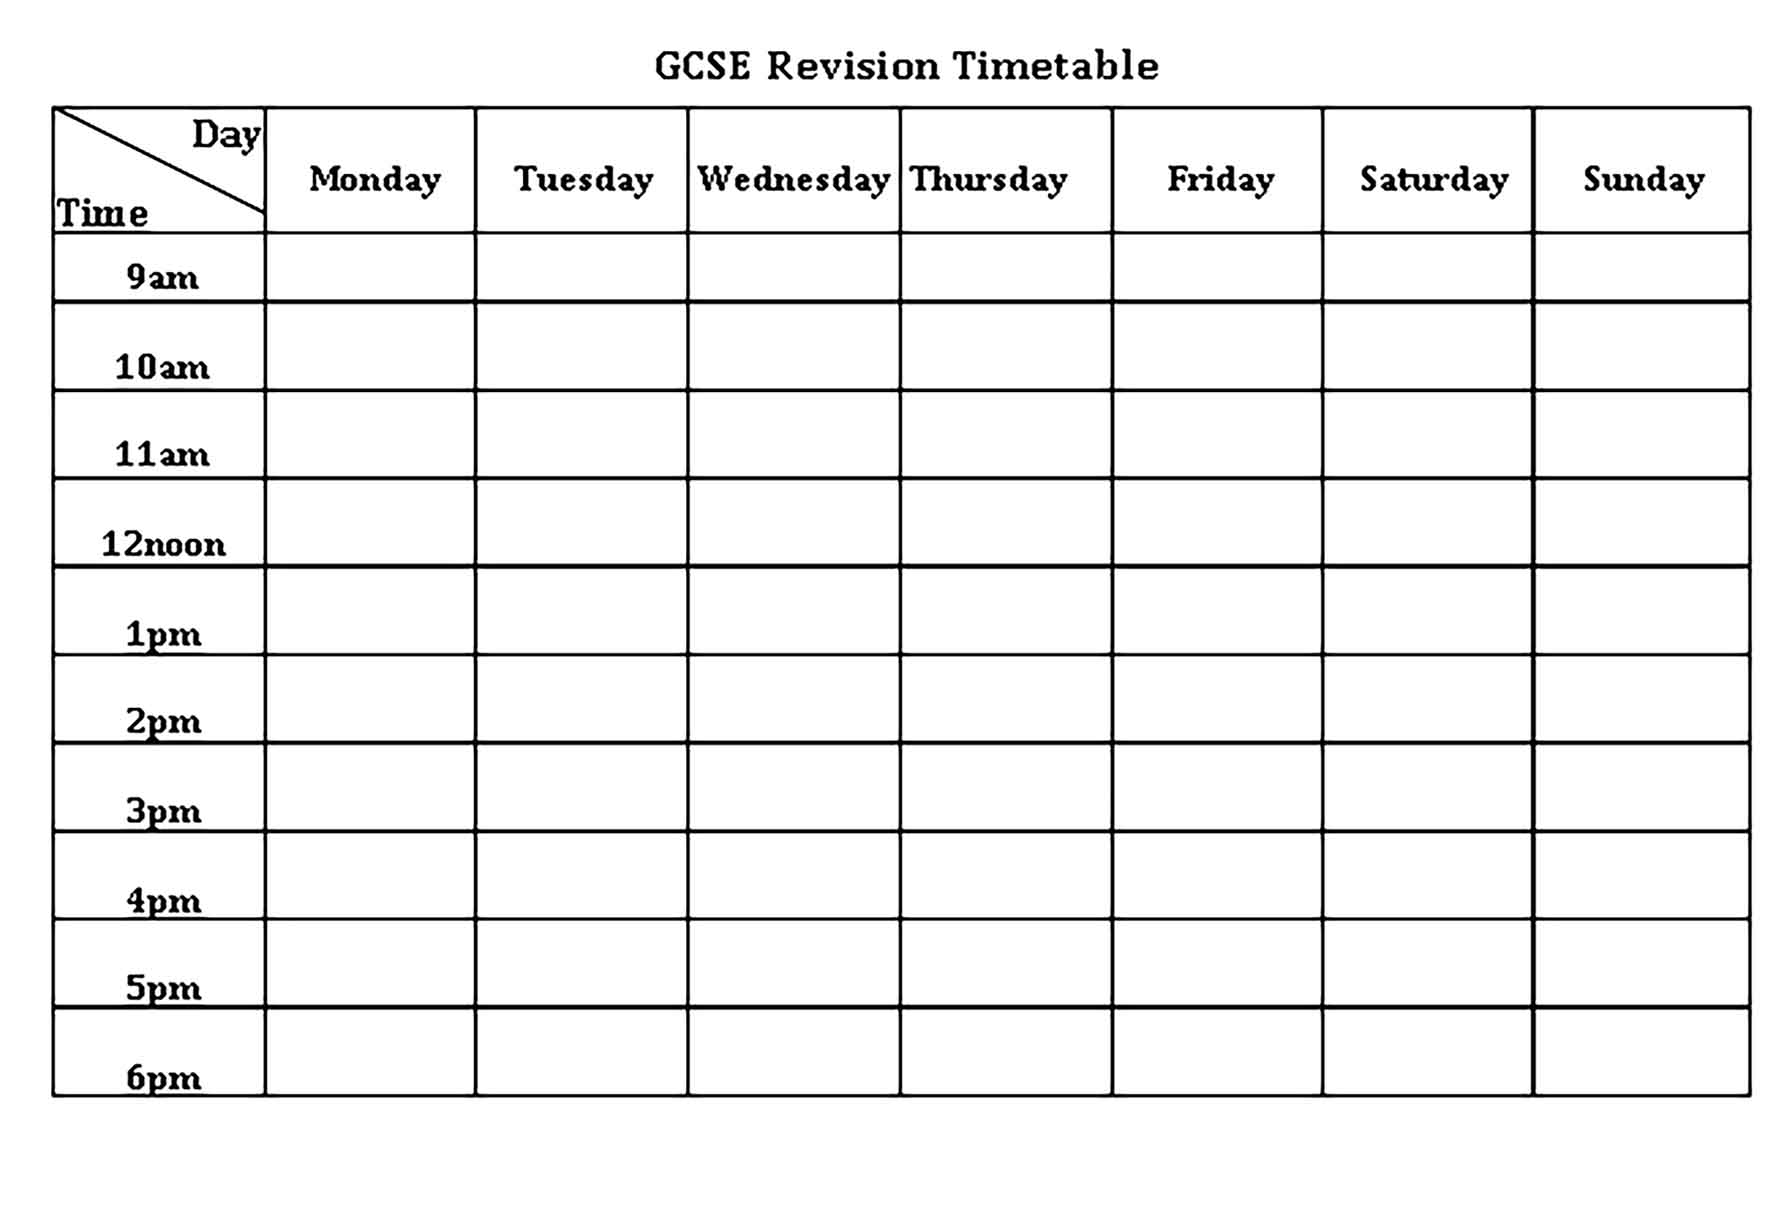 Template GCSE Revision Timetable Sample